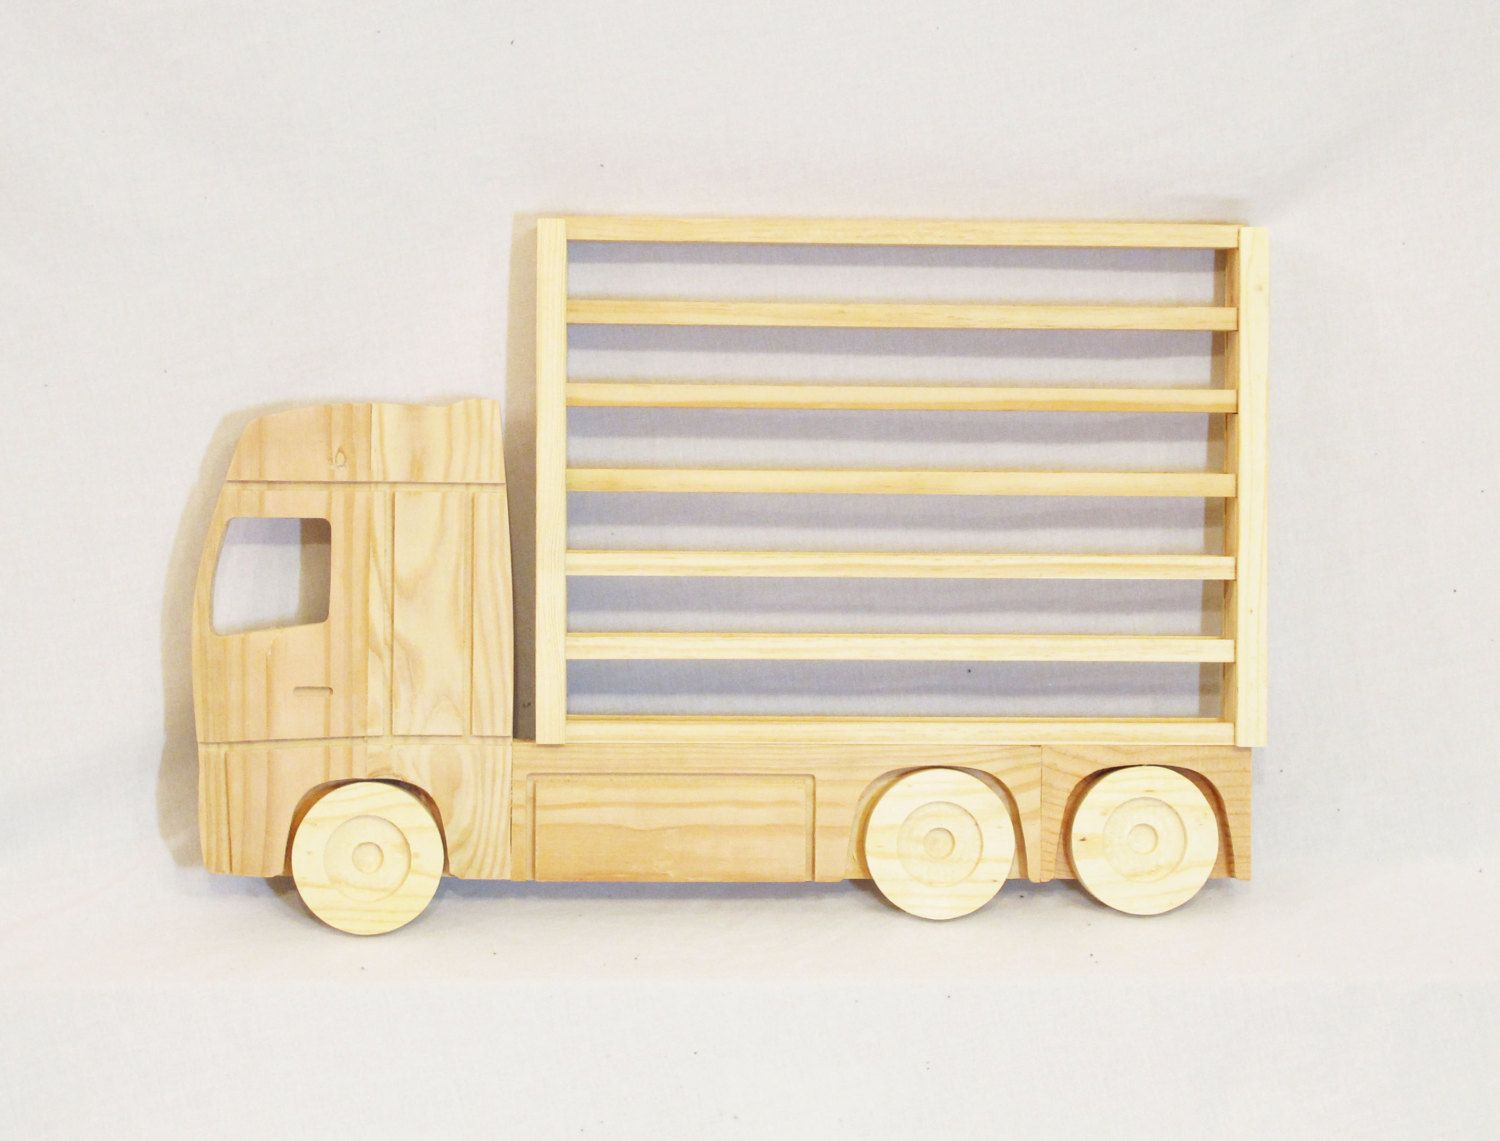 Wooden Truck Hanging Storage Display Shelf for by